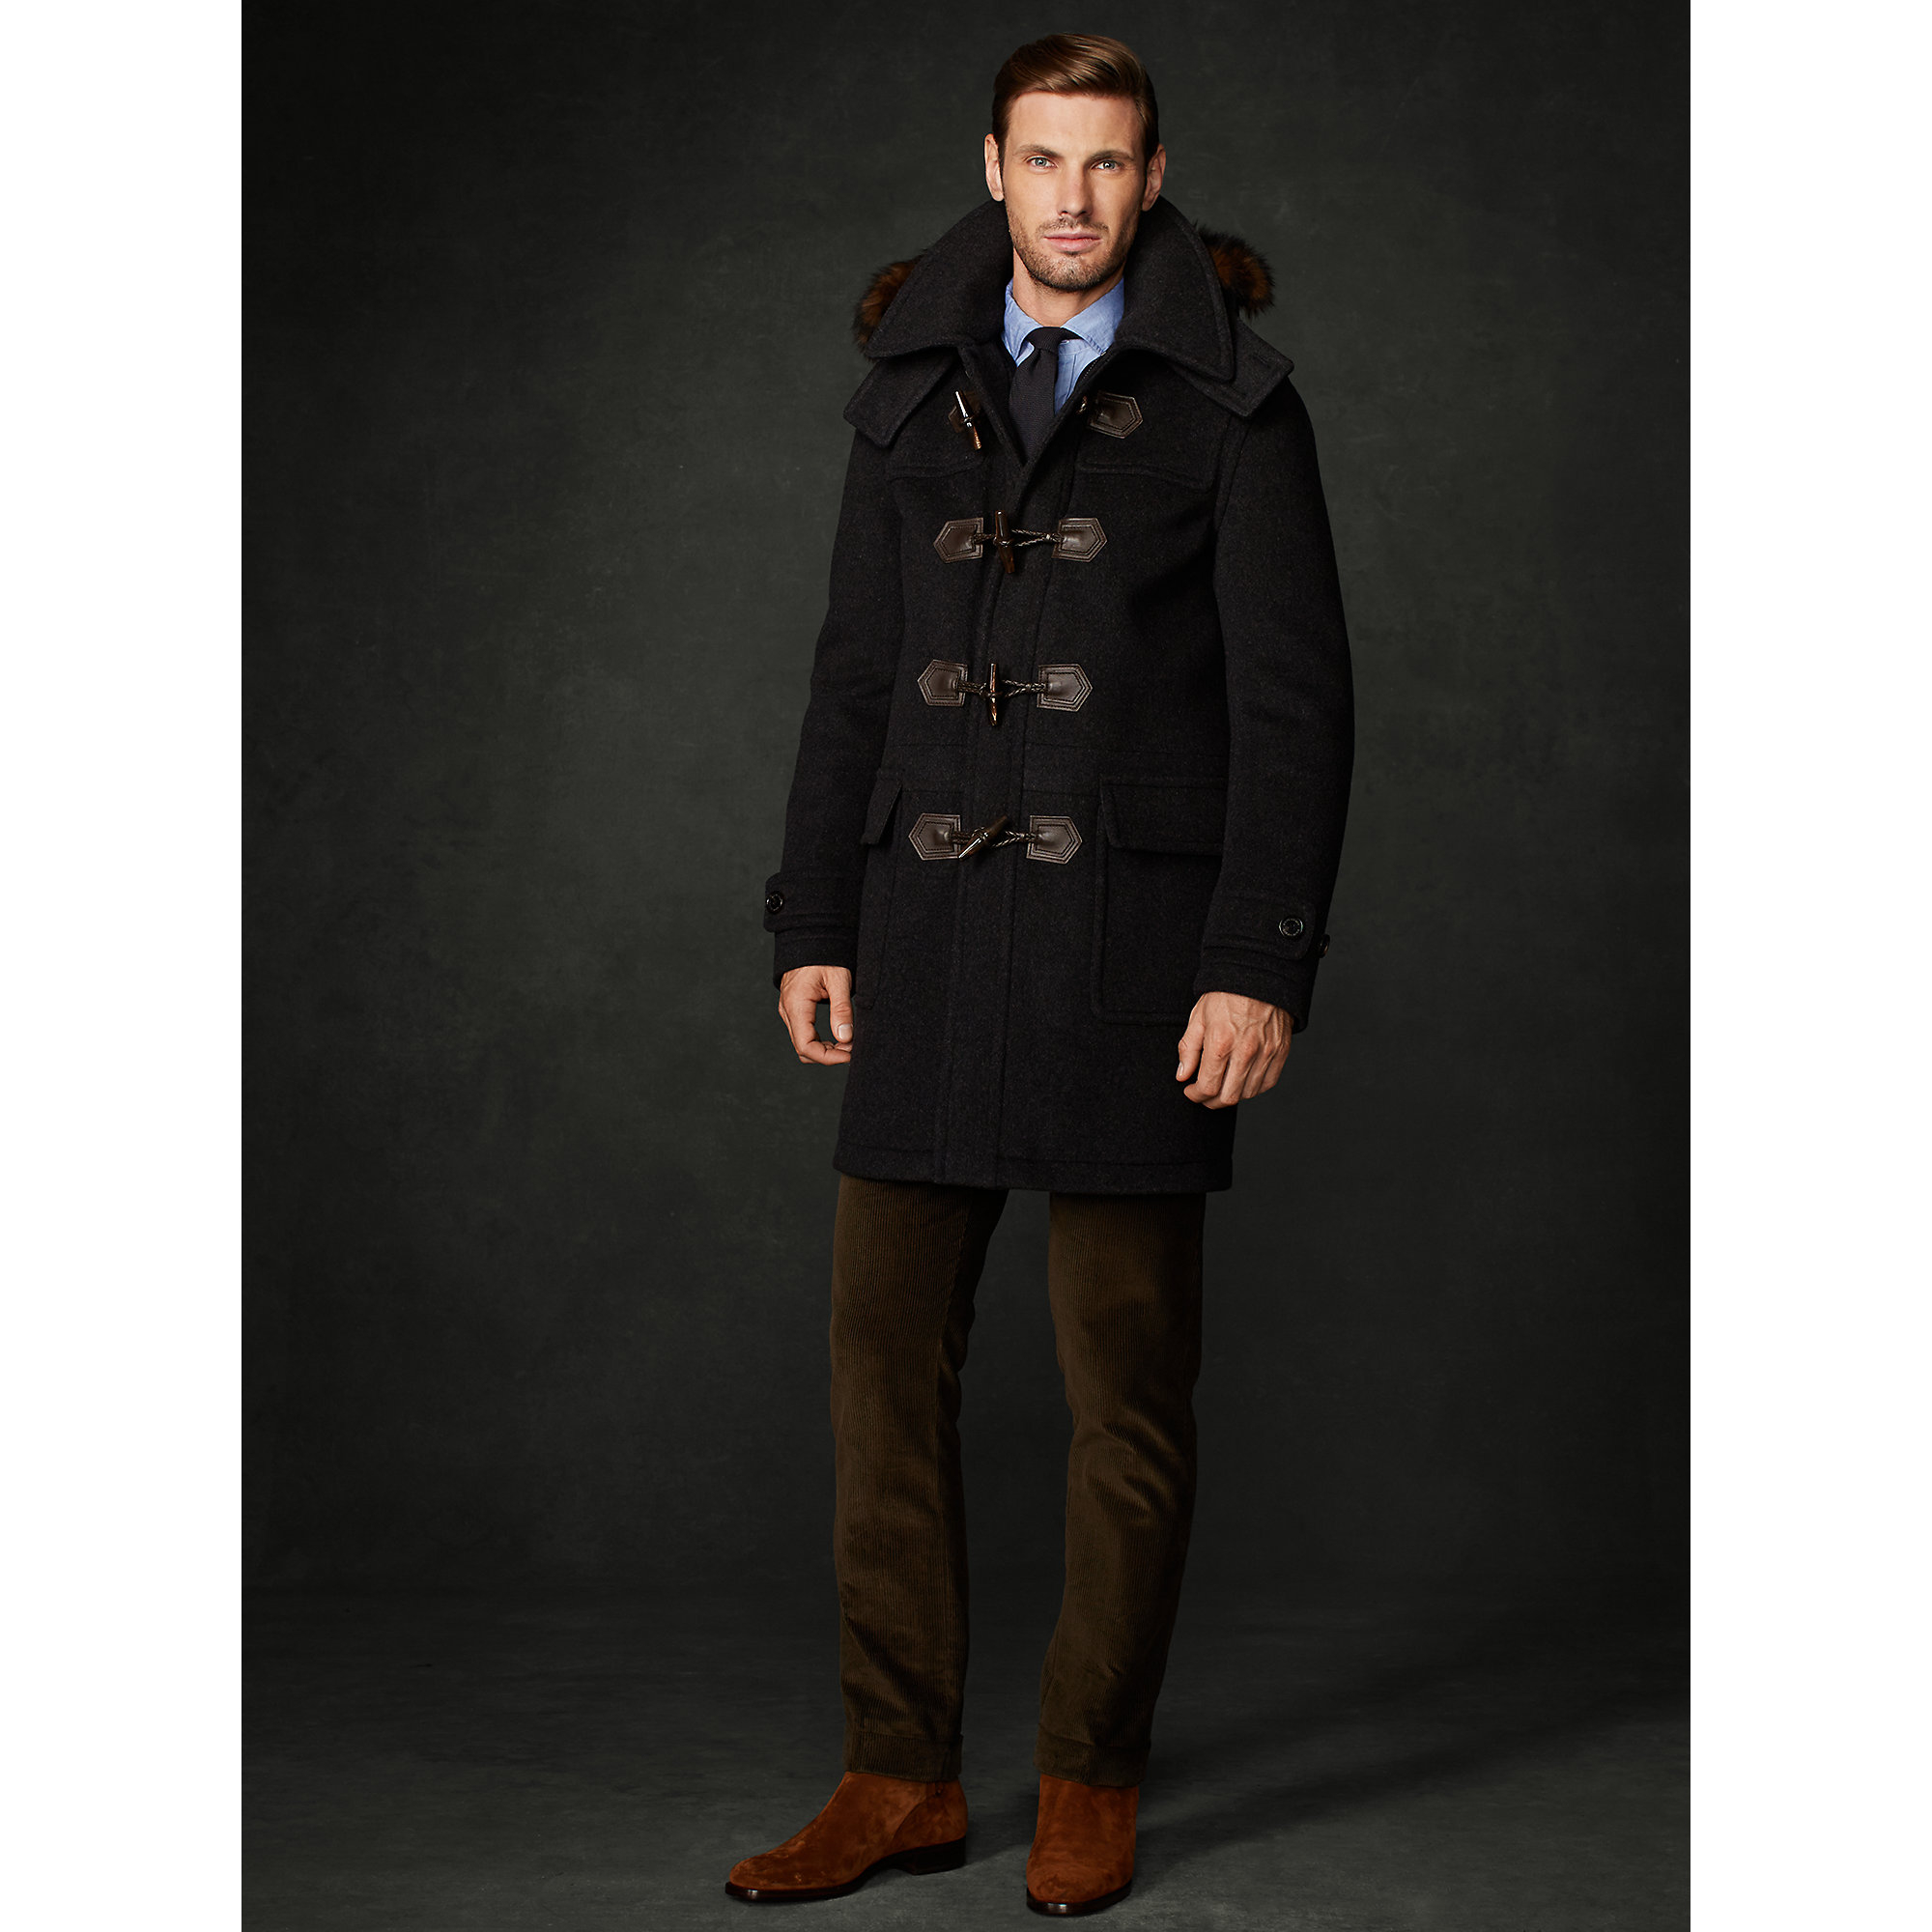 Lyst - Ralph Lauren Purple Label Wool Duffel Coat in Gray for Men